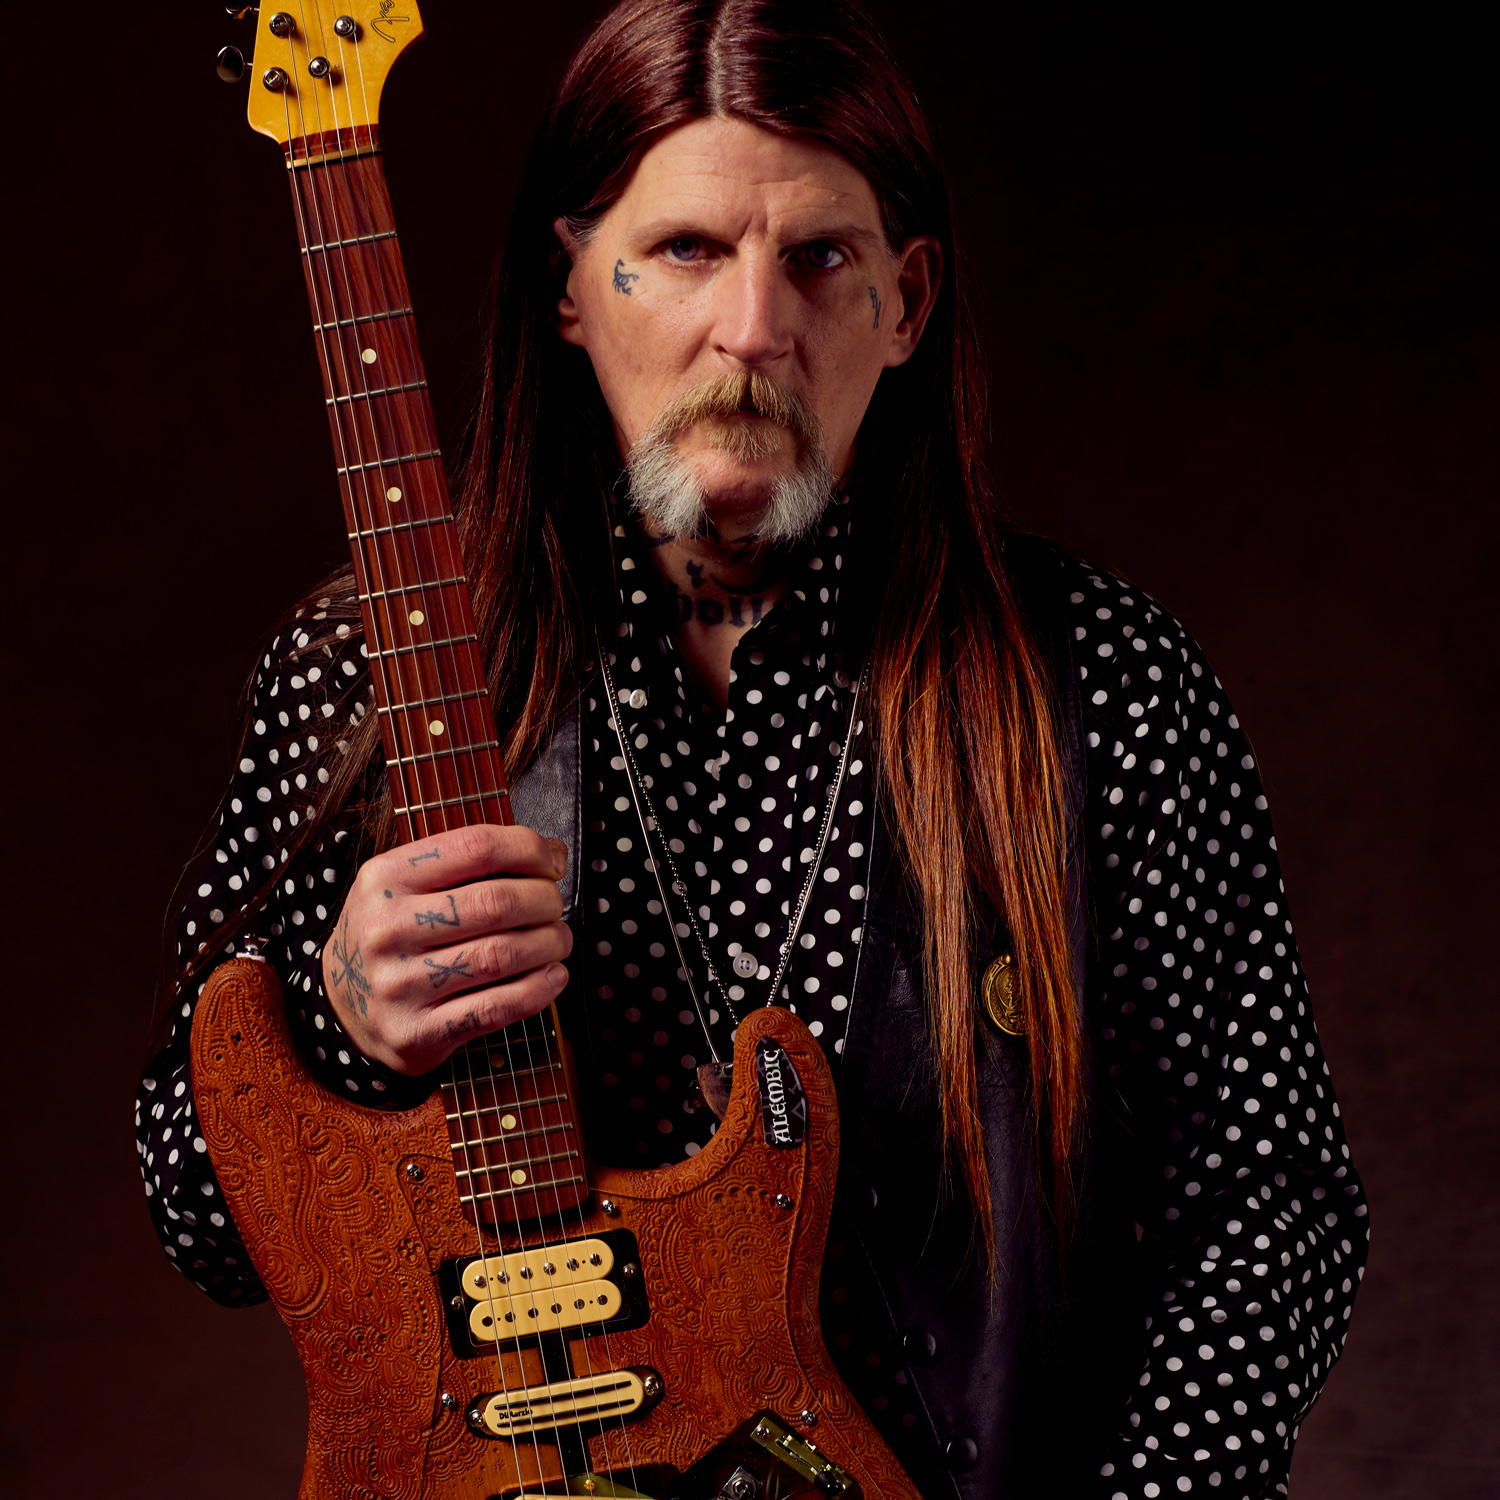 Dylan Carlson plays DiMarzio